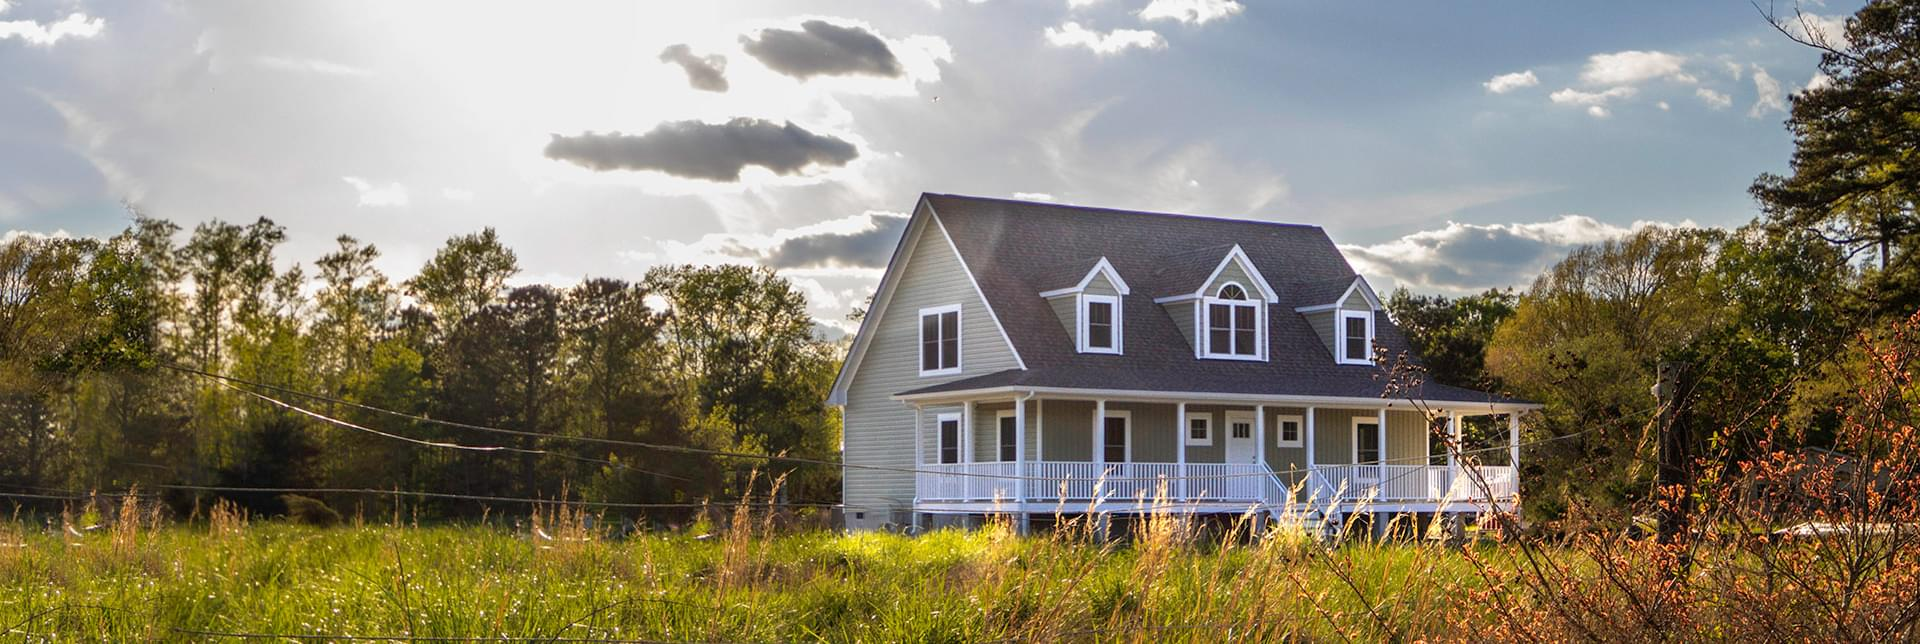 New Homes in Essex County VA